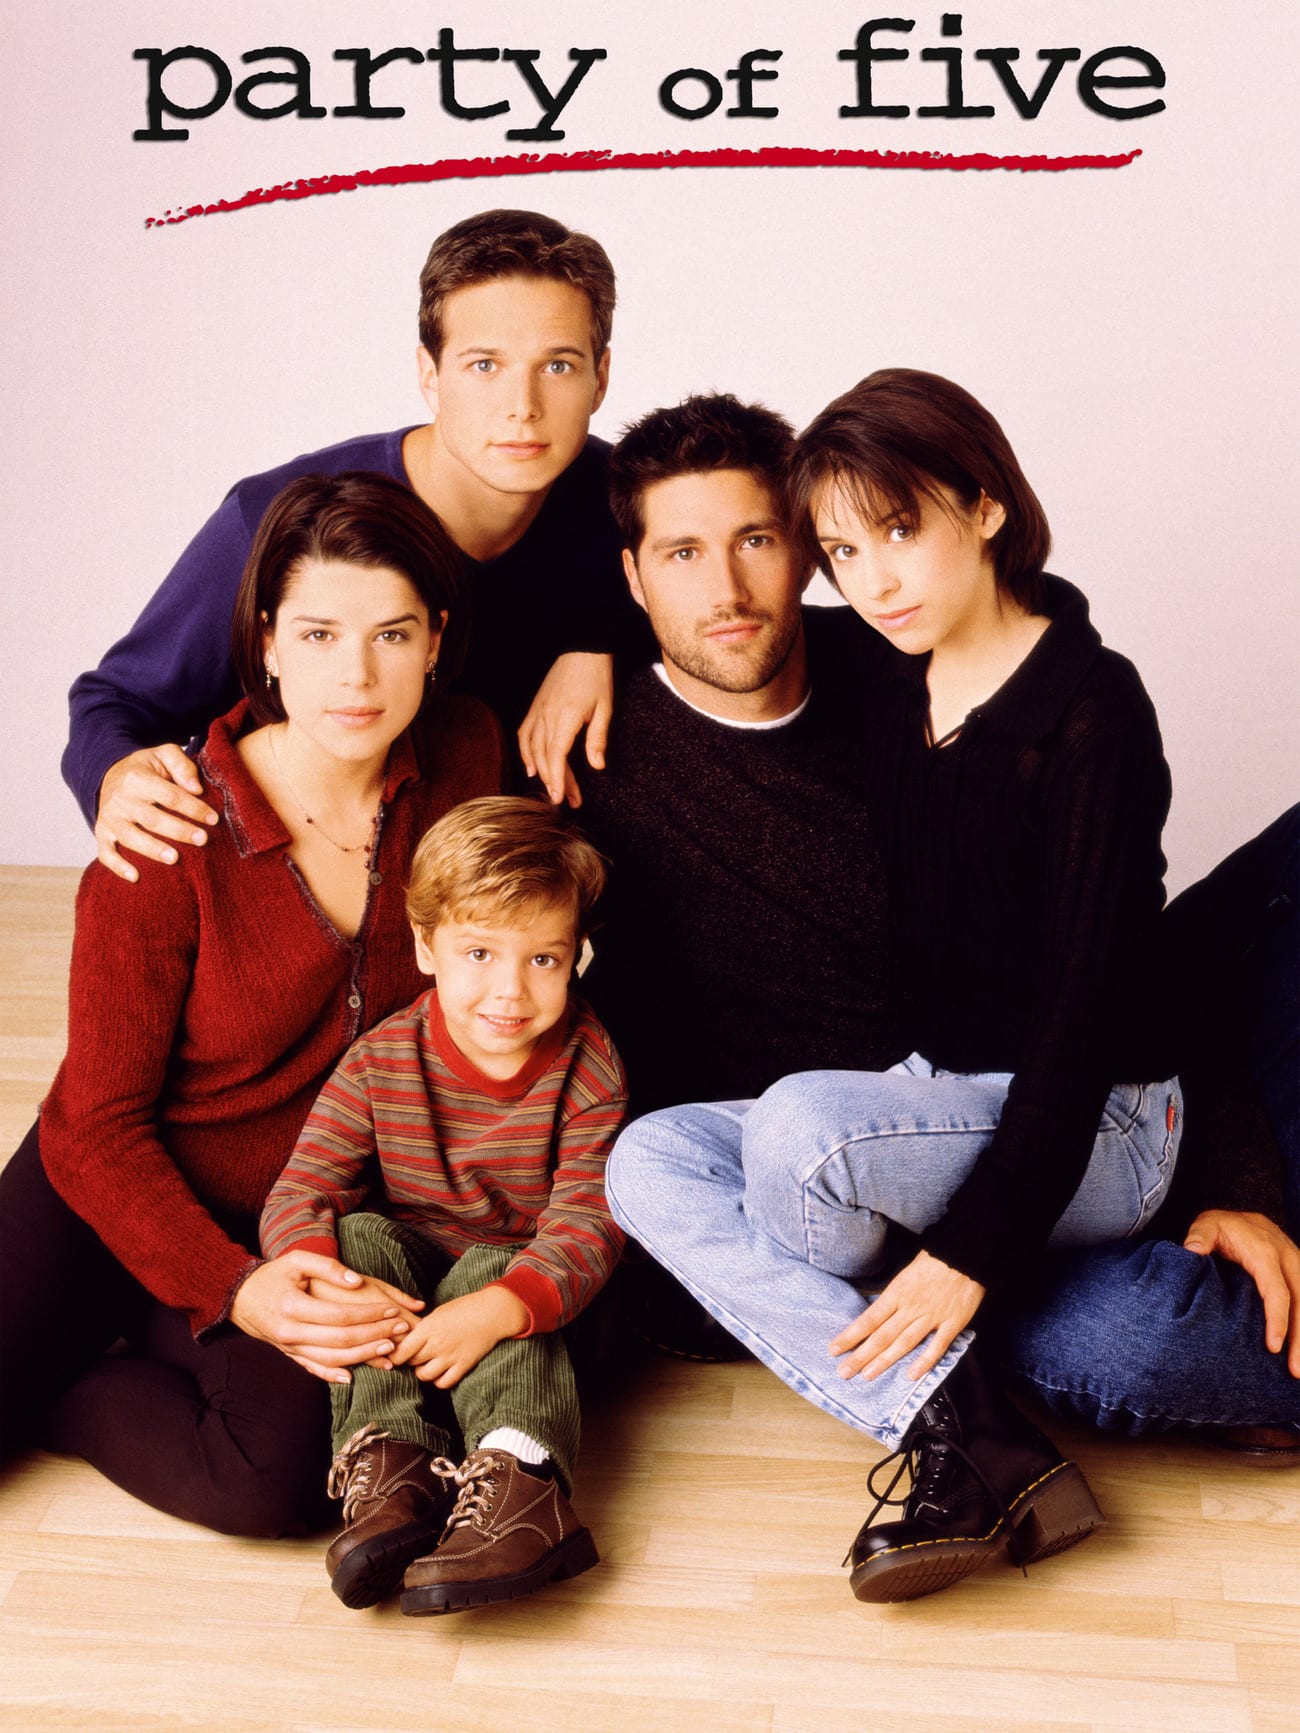 Party of Five: The Complete TV Series (143 Episodes) for $29.99 (Digital SD) on iTunes